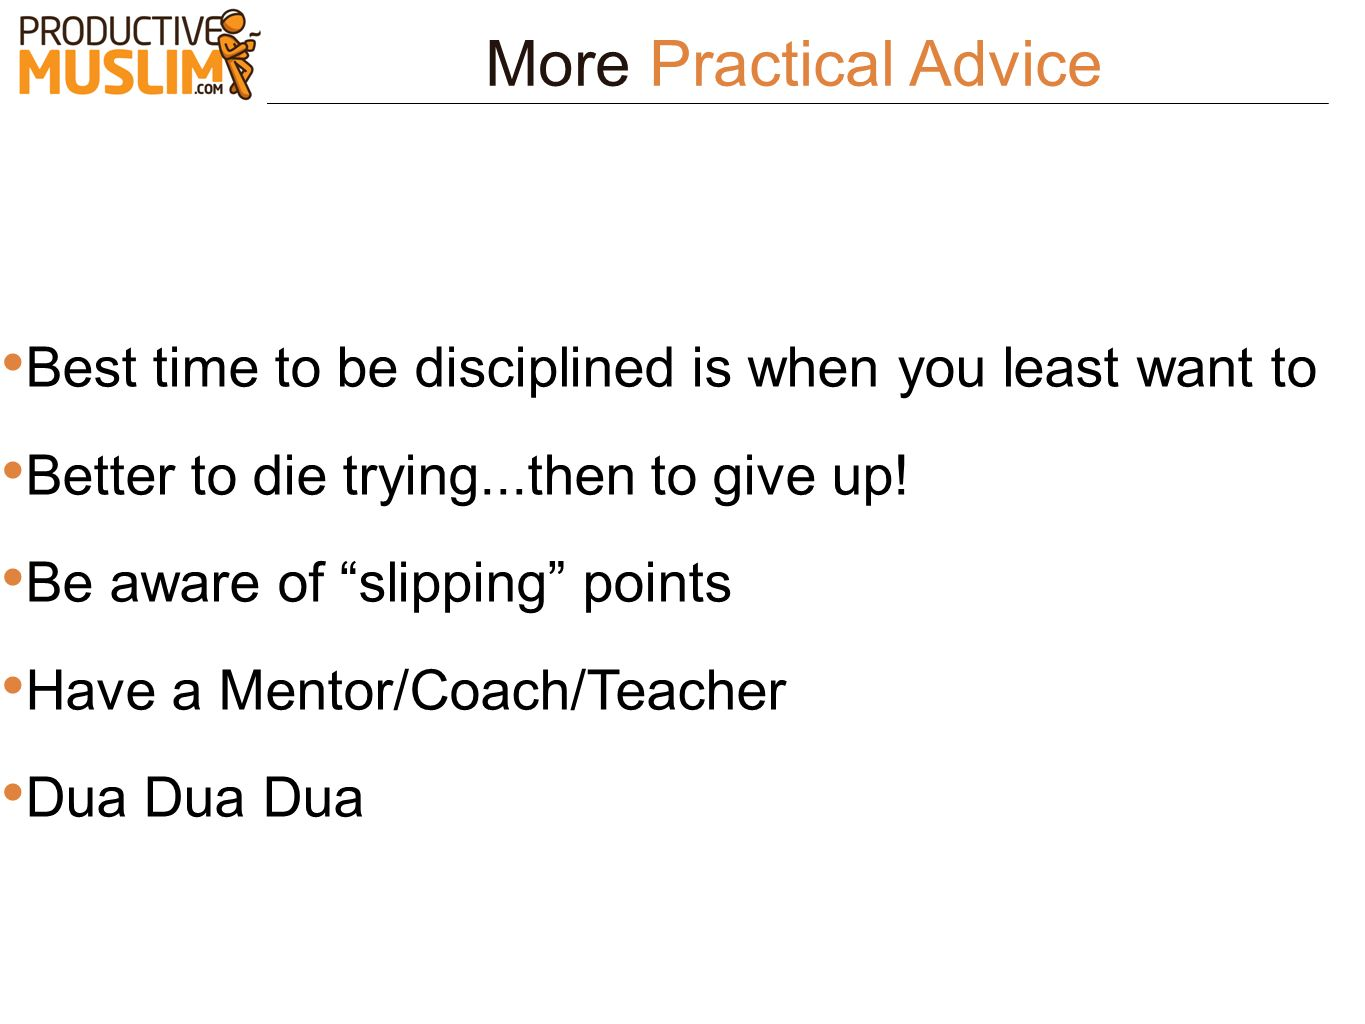 More Practical Advice Best time to be disciplined is when you least want to. Better to die trying...then to give up!